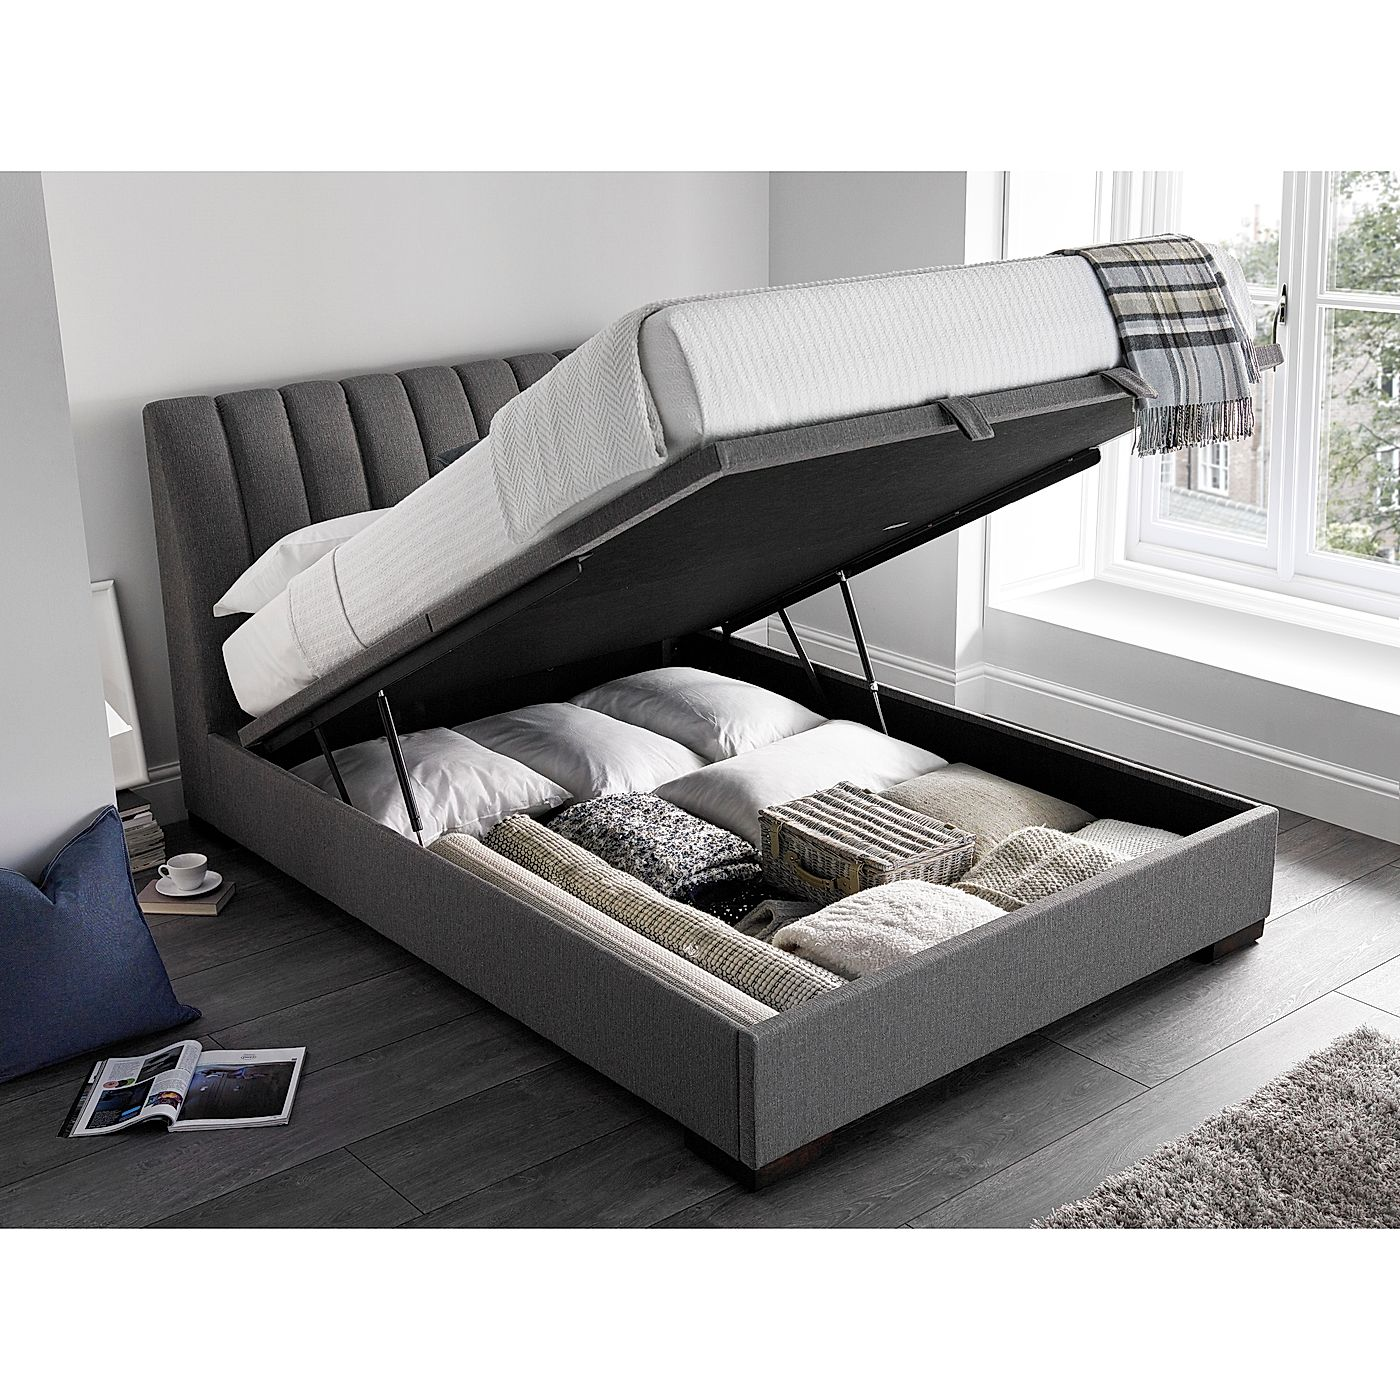 6836932a1423 keyboard_arrow_left; keyboard_arrow_right. Kaydian Lanchester Ottoman  Storage Bed - Double - Grey; Kaydian Lanchester ...